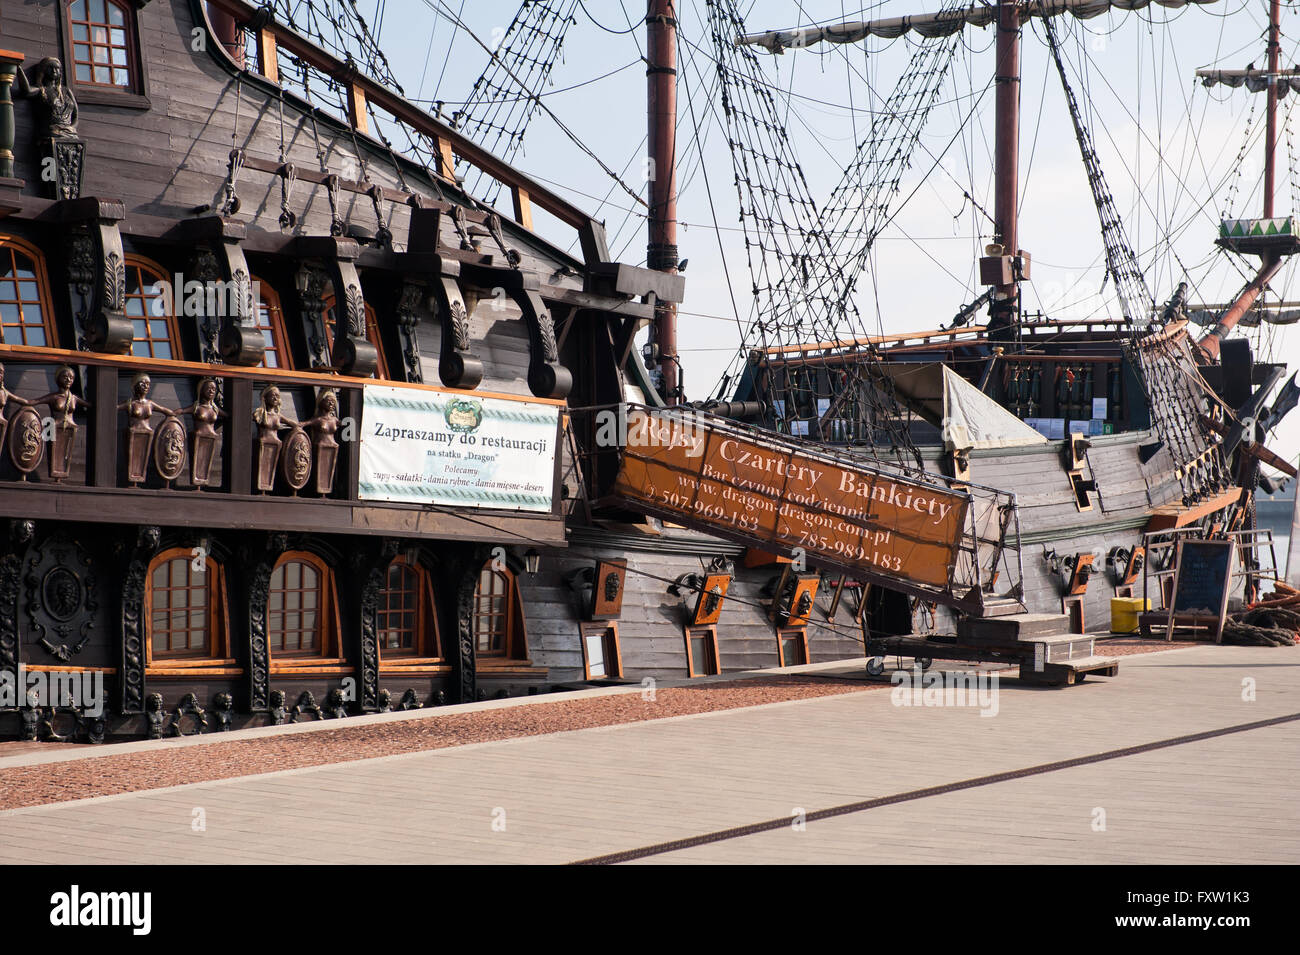 Dragon passenger vessel entrance in Gdynia, Poland, Europe, the Baltic Sea, accommodation ladder to the cruise ship - Stock Image